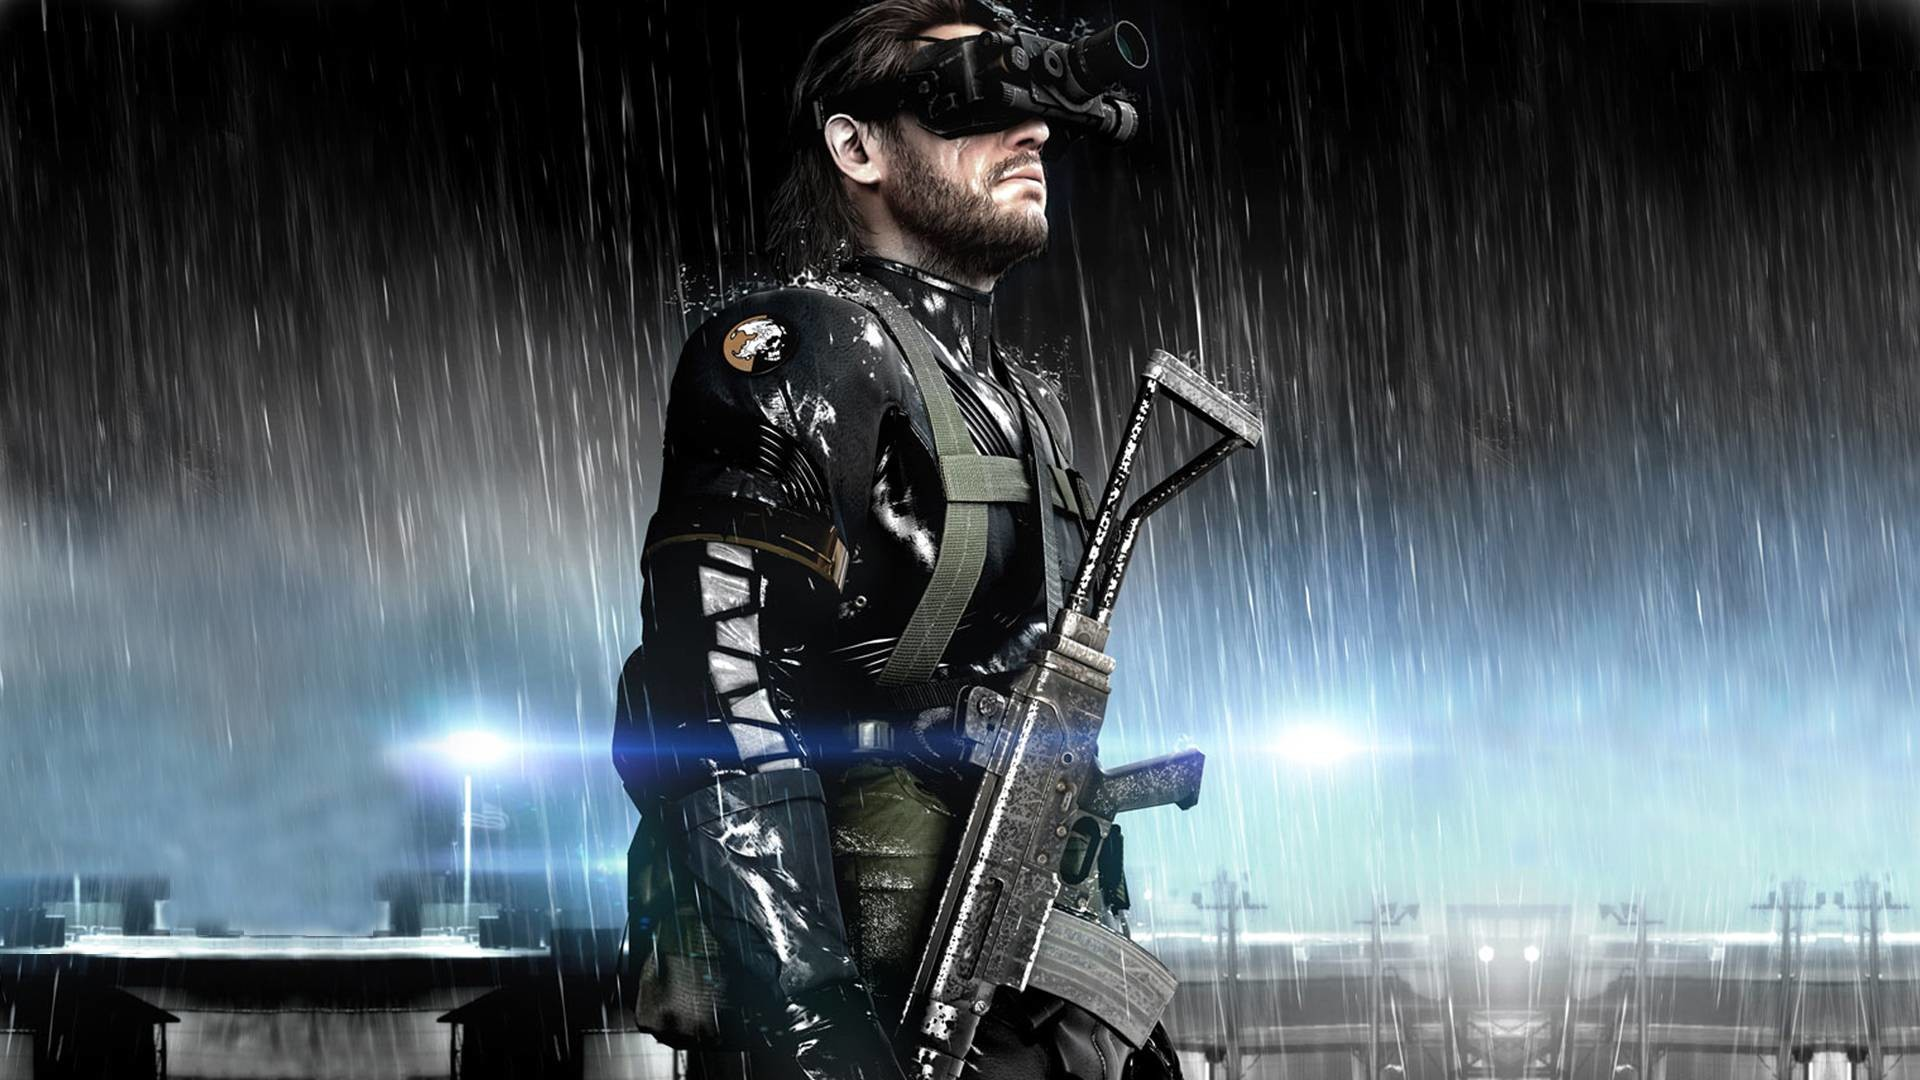 Metal Gear Solid Ground Zeroes Wallpapers In HD Â« GamingBolt.com .